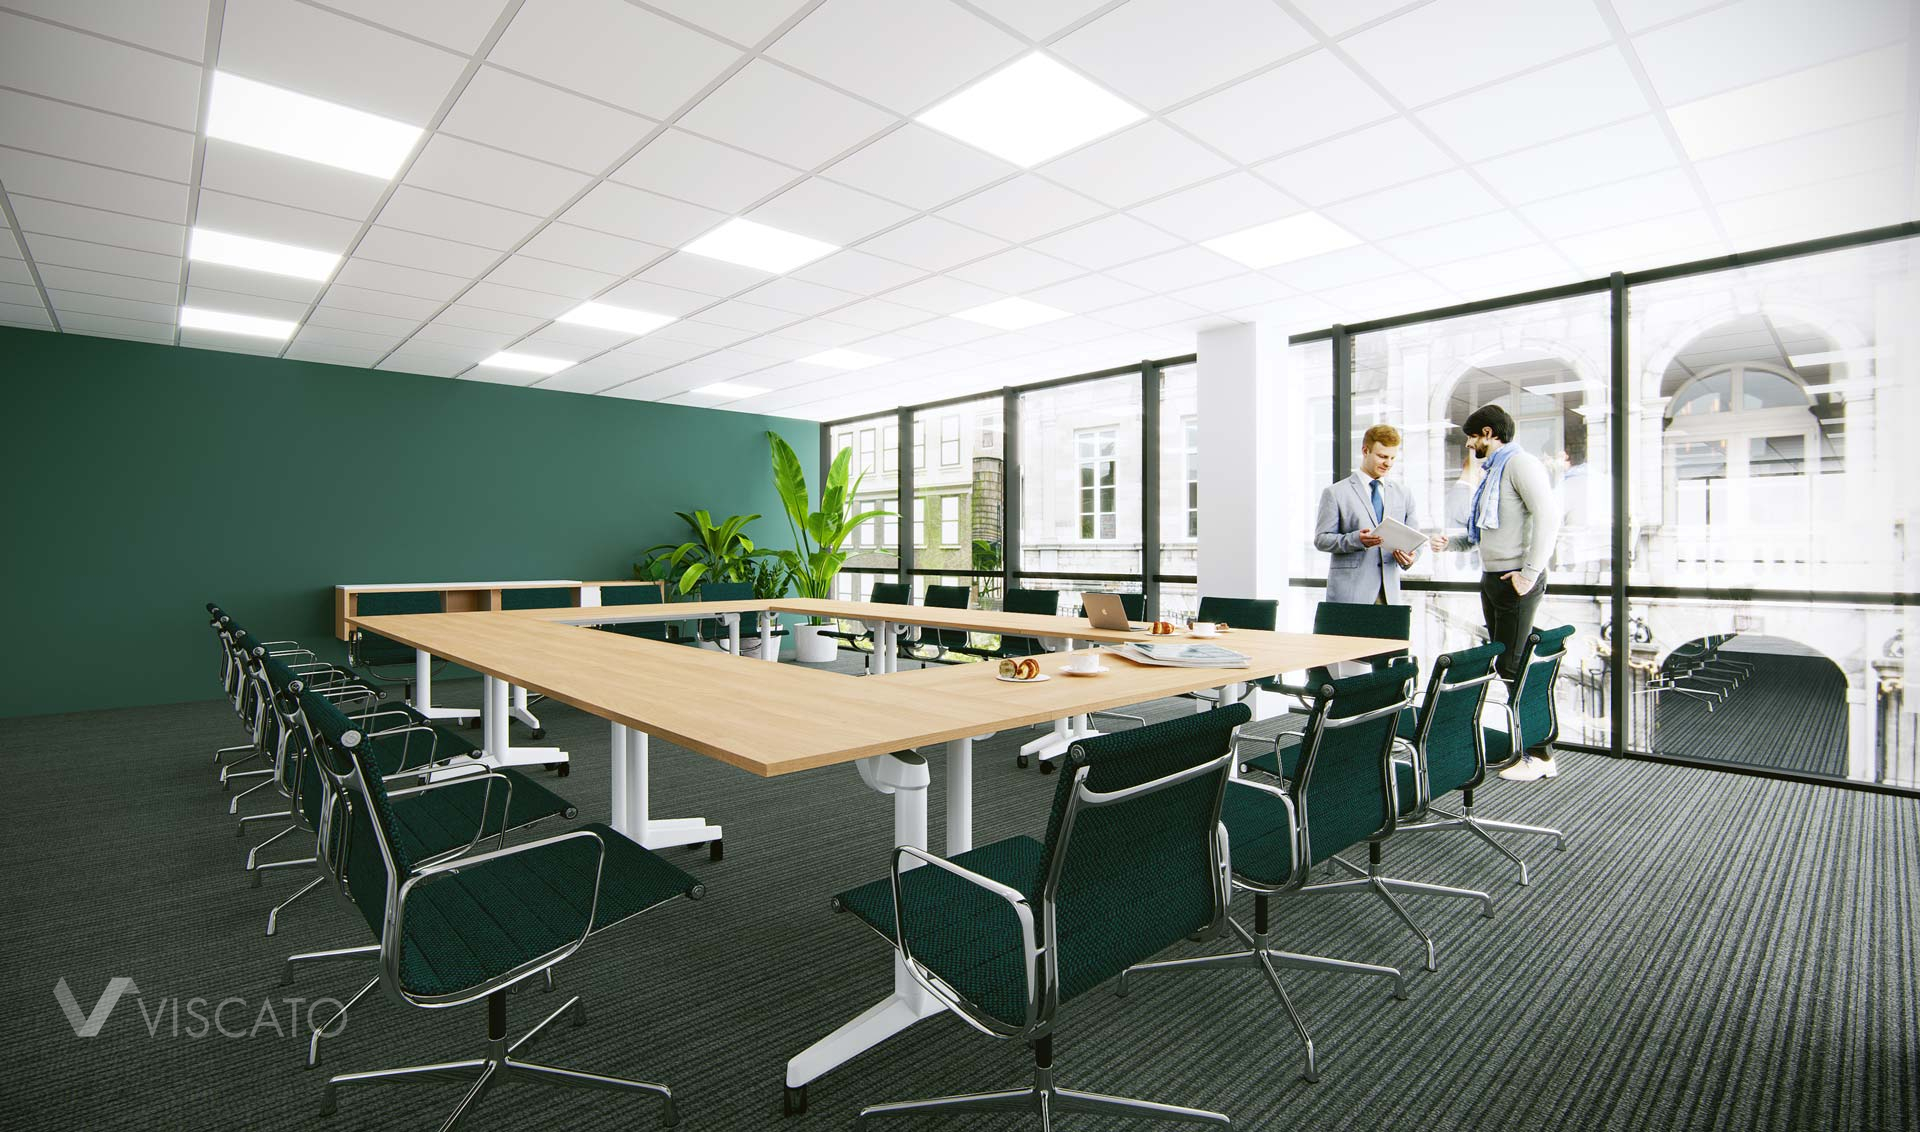 Green conference room, Viscao 3D